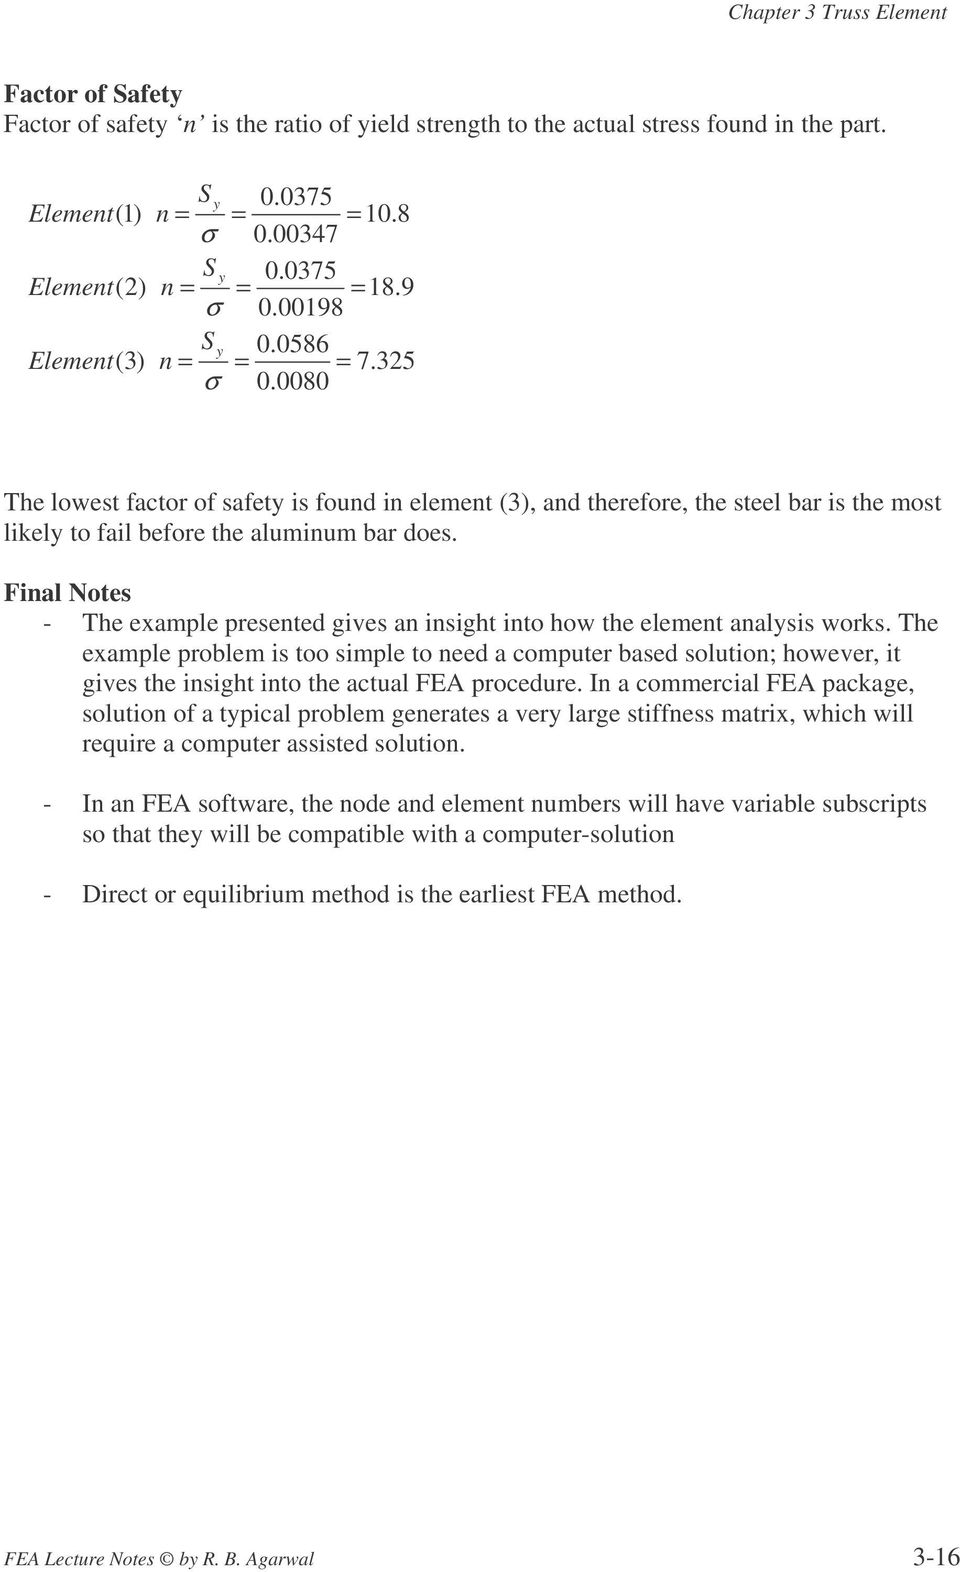 Final Notes - The example presented gives an insight into how the element analysis works.